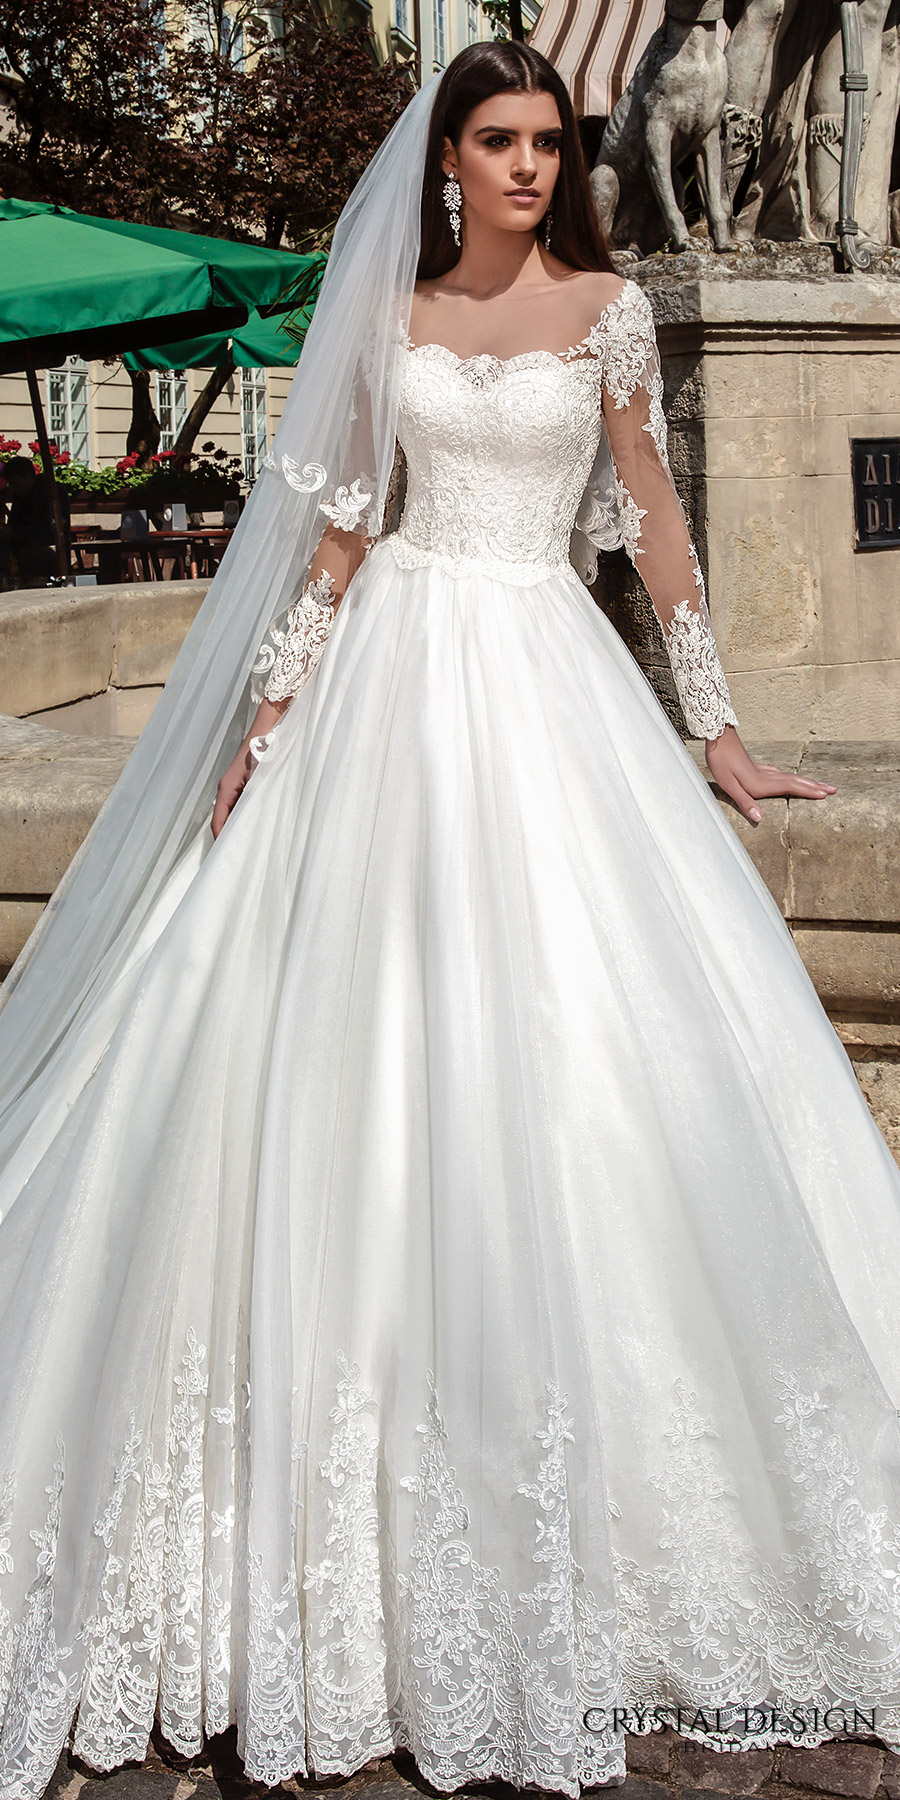 Crystal design 2016 wedding dresses wedding inspirasi for Long straight wedding dresses